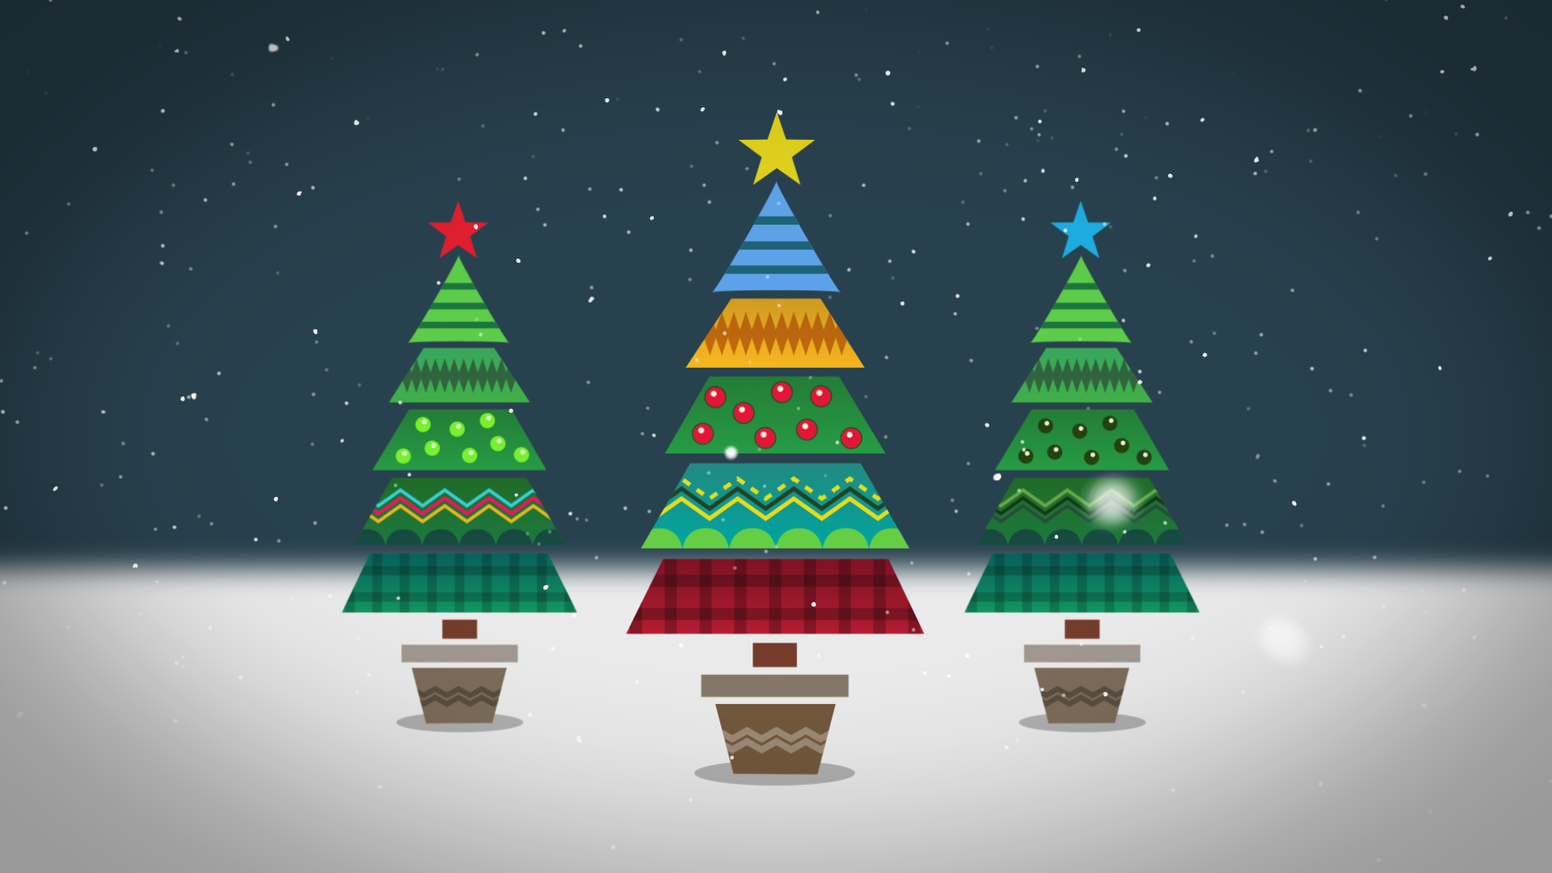 animated christmas cards - Christmas Images For Cards